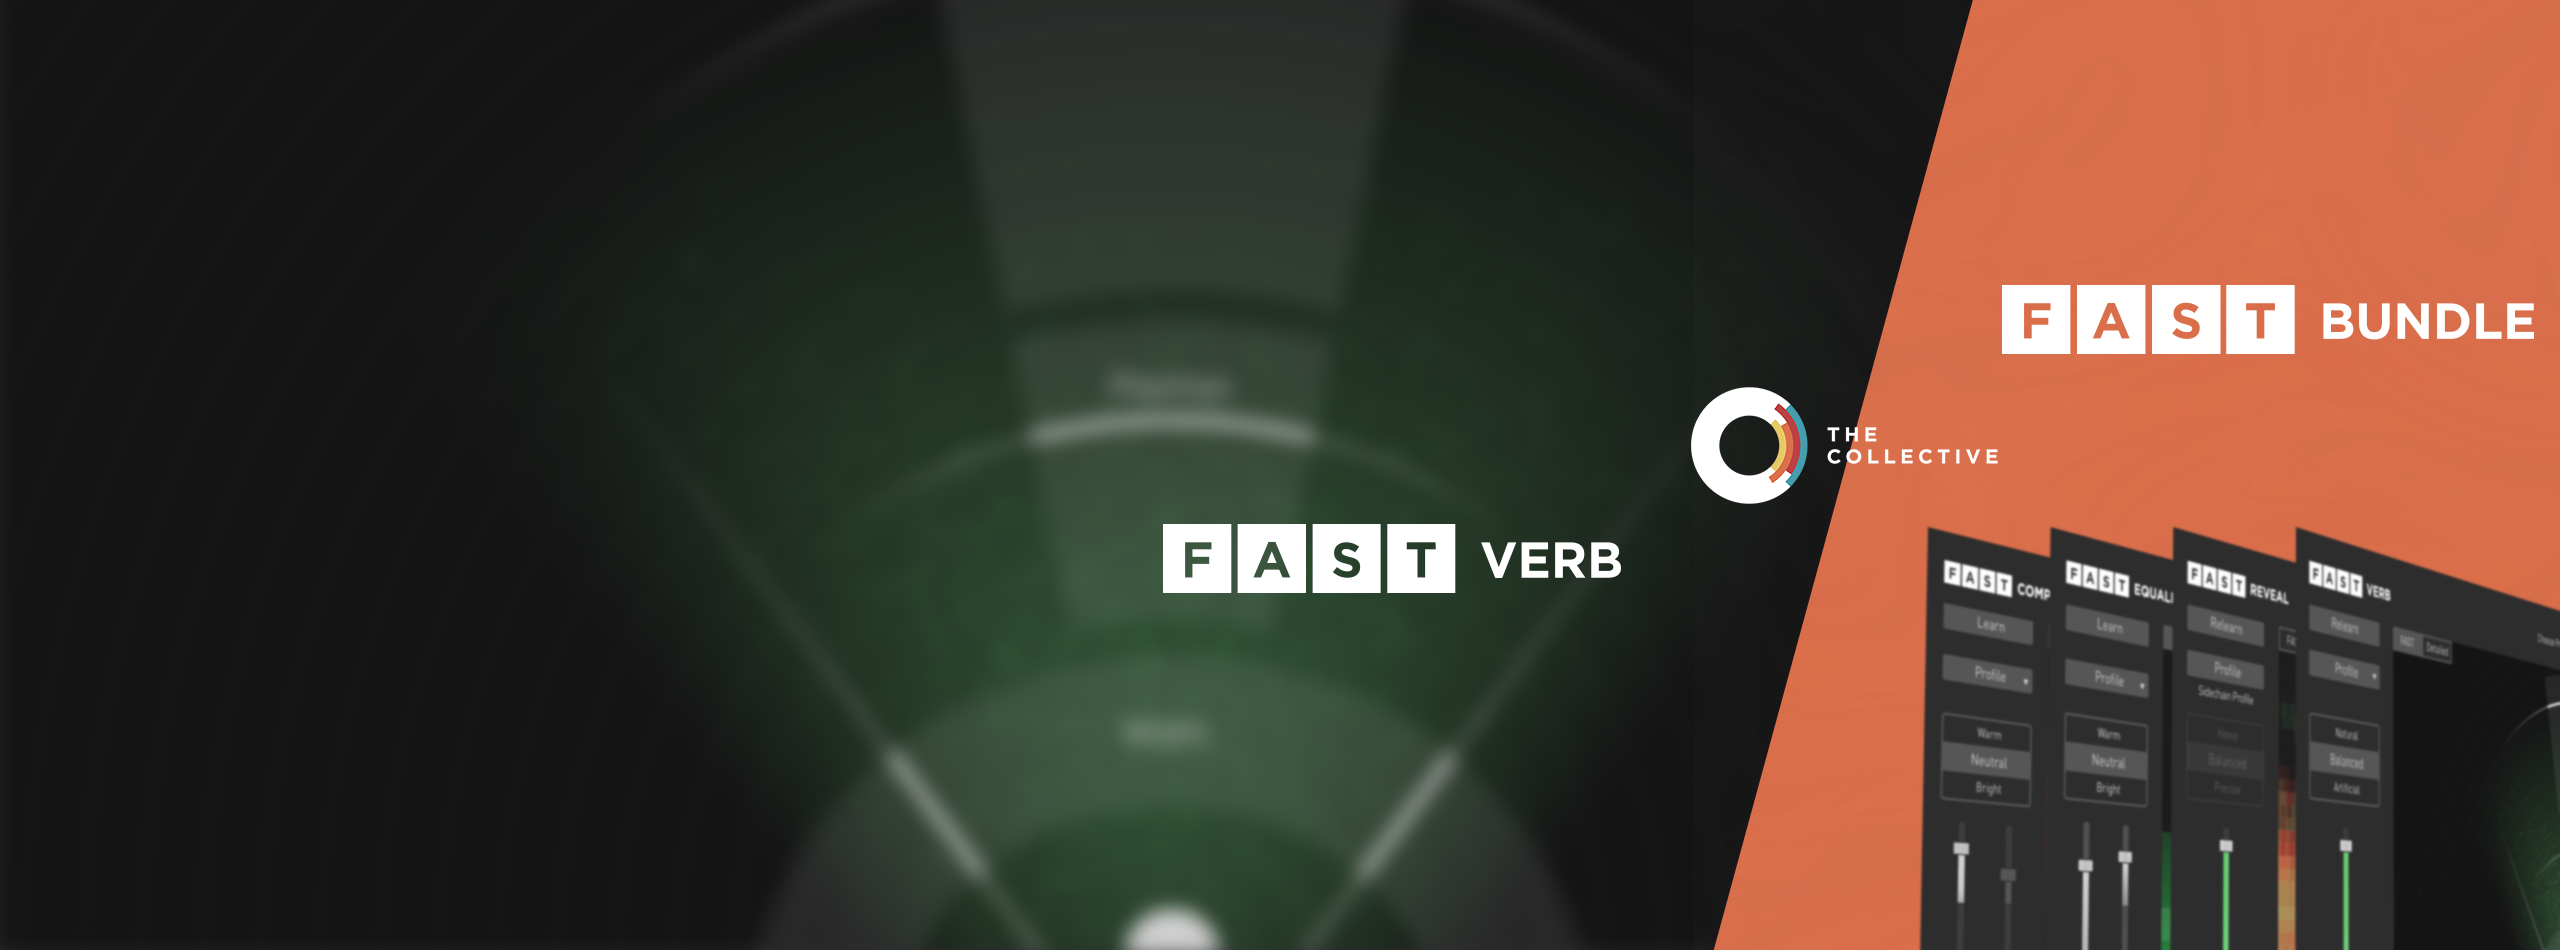 The Collective - FAST Verb & FAST Bundle